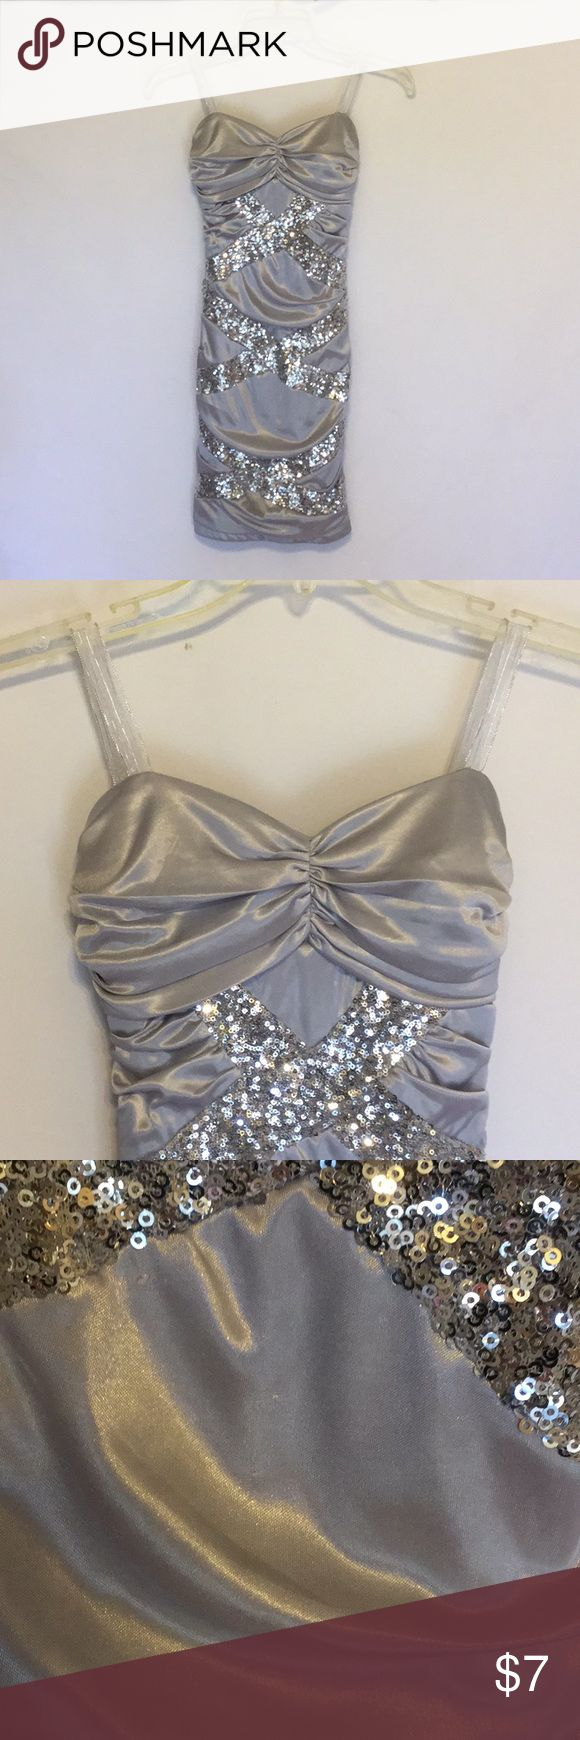 """Silver Sequin Dress Perfect for a holiday party. Ribbon was added for straps but can be easily removed. Back zipper. Form fitting. Does run small for a 5.  There are a few small snags on the front of the dress, otherwise In good condition.  Approximate measurements: Taken while the garment is laying flat and unstretched; appropriate measurements can be doubled for total circumference. Length:  28"""" Underarm to underarm:  11.5"""" Waist seam to seam:  9.5"""" Made of:  polyester with nylon lining…"""